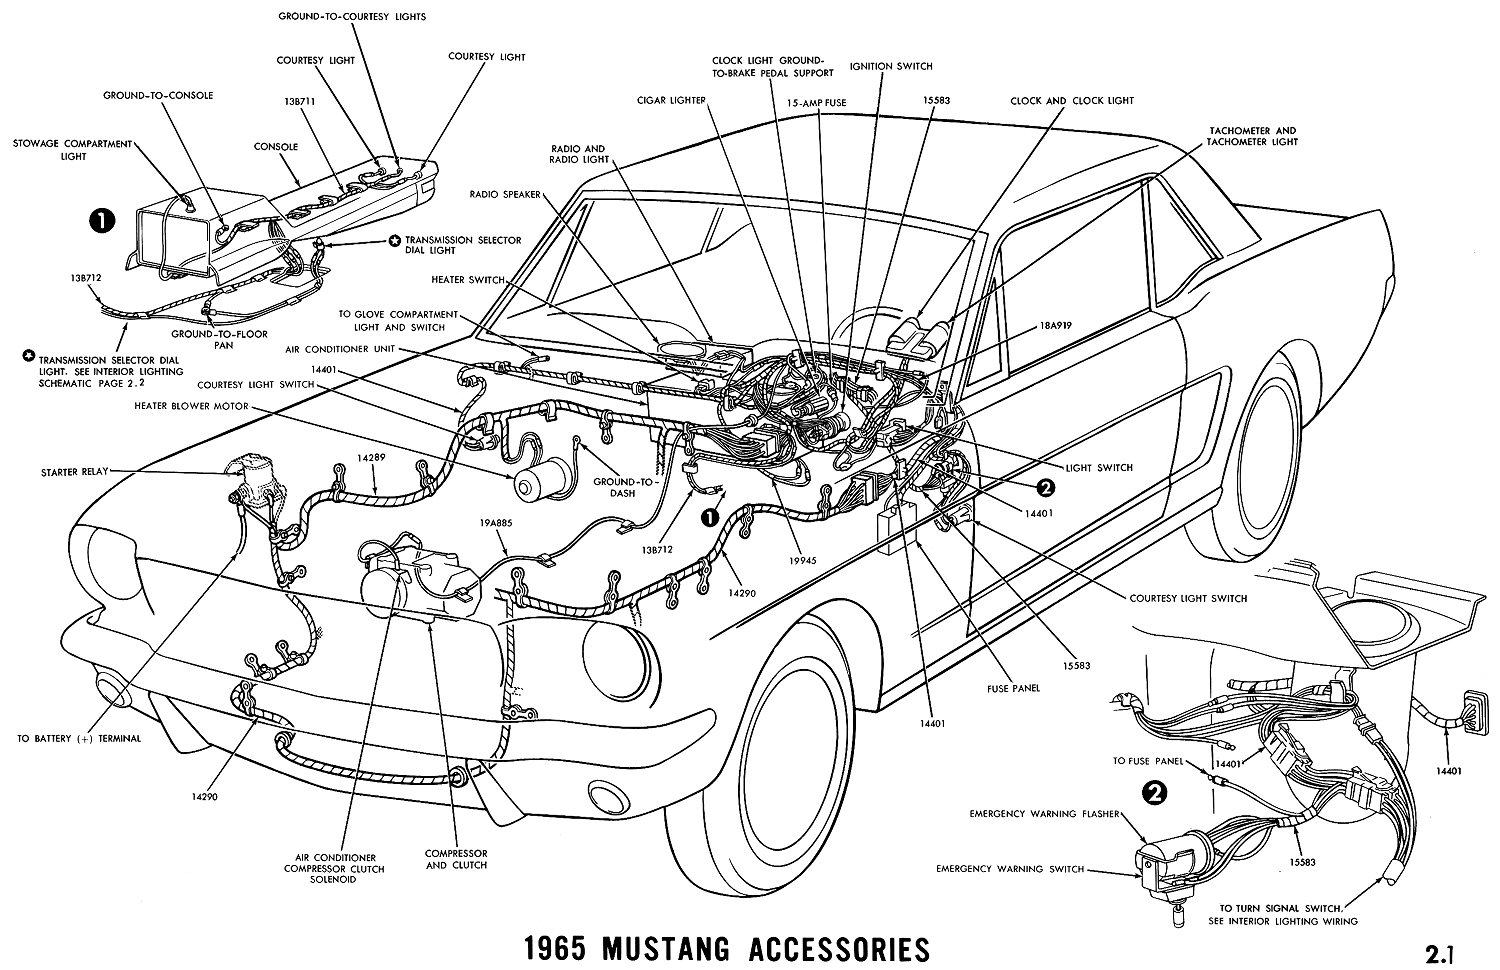 1965h 1965 mustang wiring diagrams average joe restoration 1965 mustang heater wiring diagram at cos-gaming.co